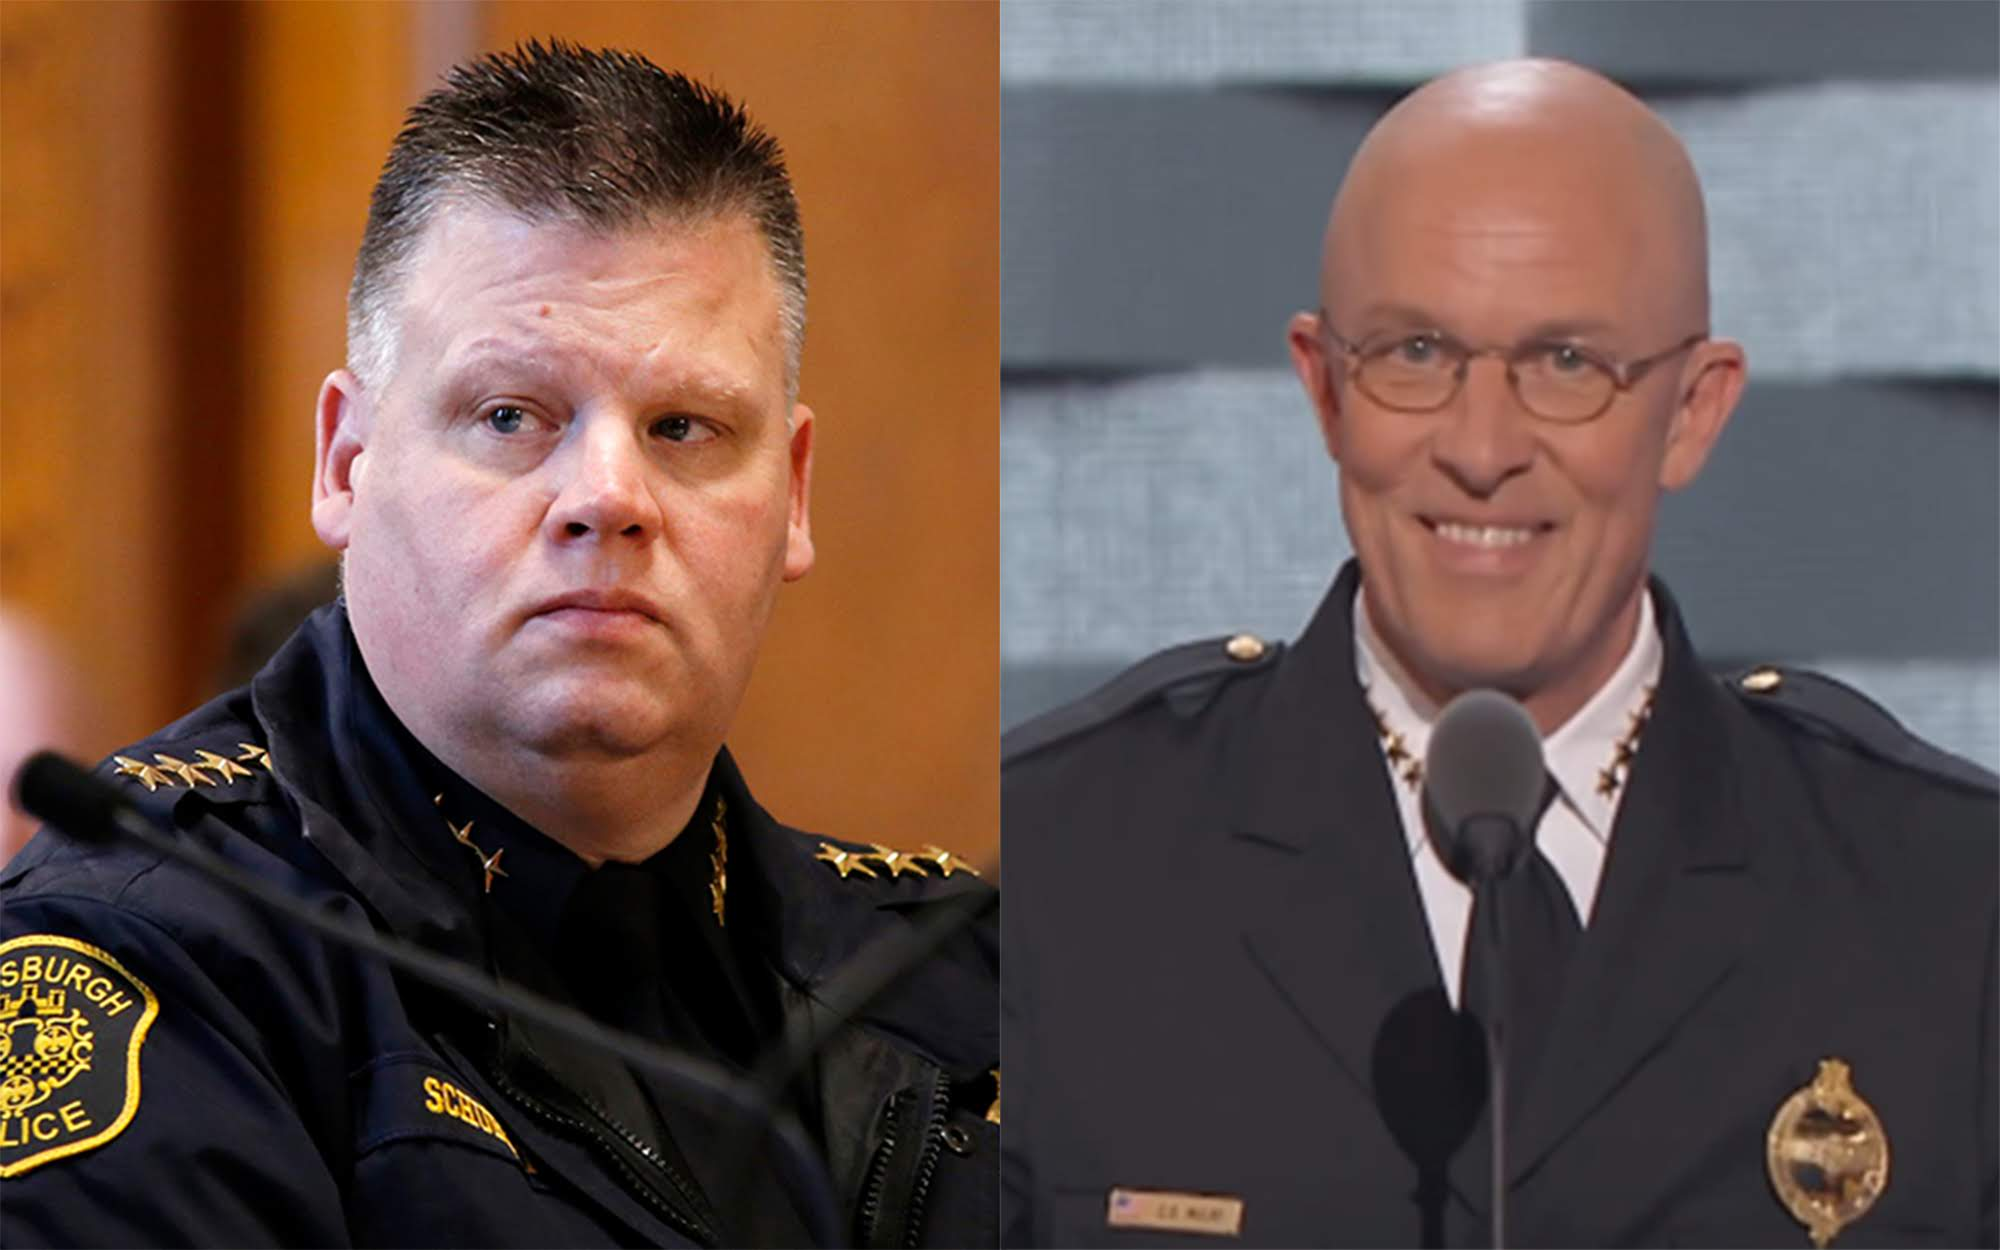 Current Pittsburgh Police Chief Scott Schubert (left) and former Pittsburgh Police Chief Cameron McLay (right).